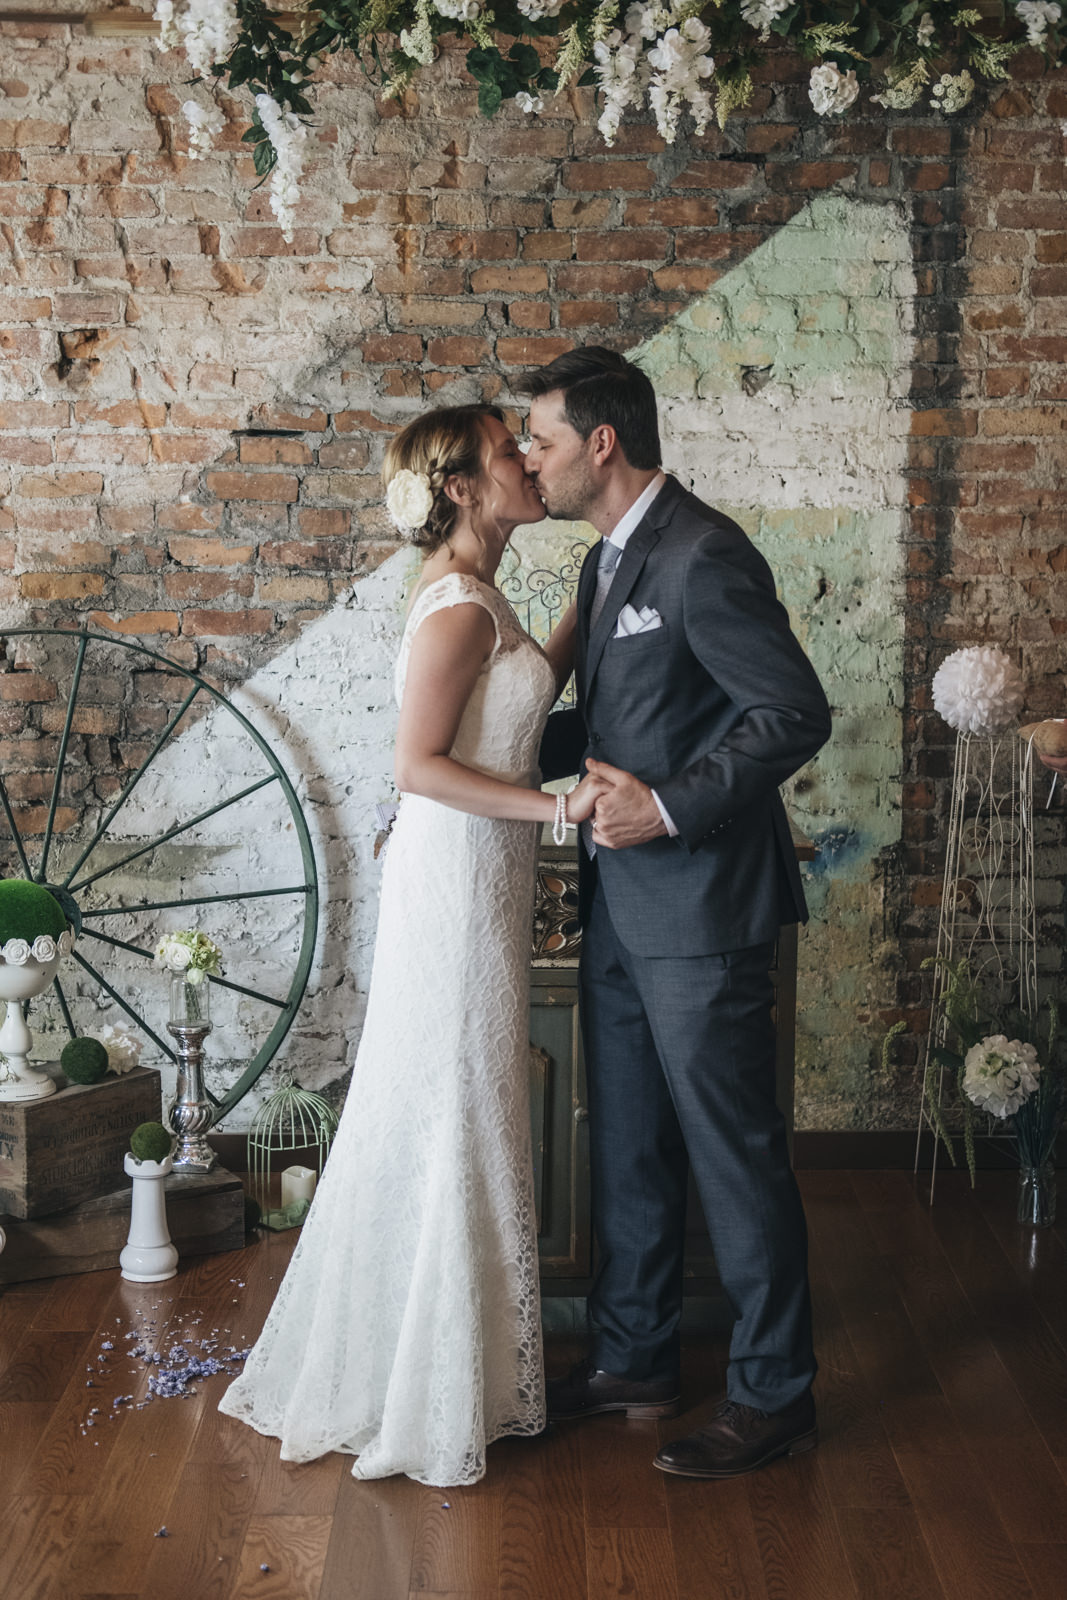 Bride and groom kiss during their urban wedding ceremony in Toledo, Ohio.